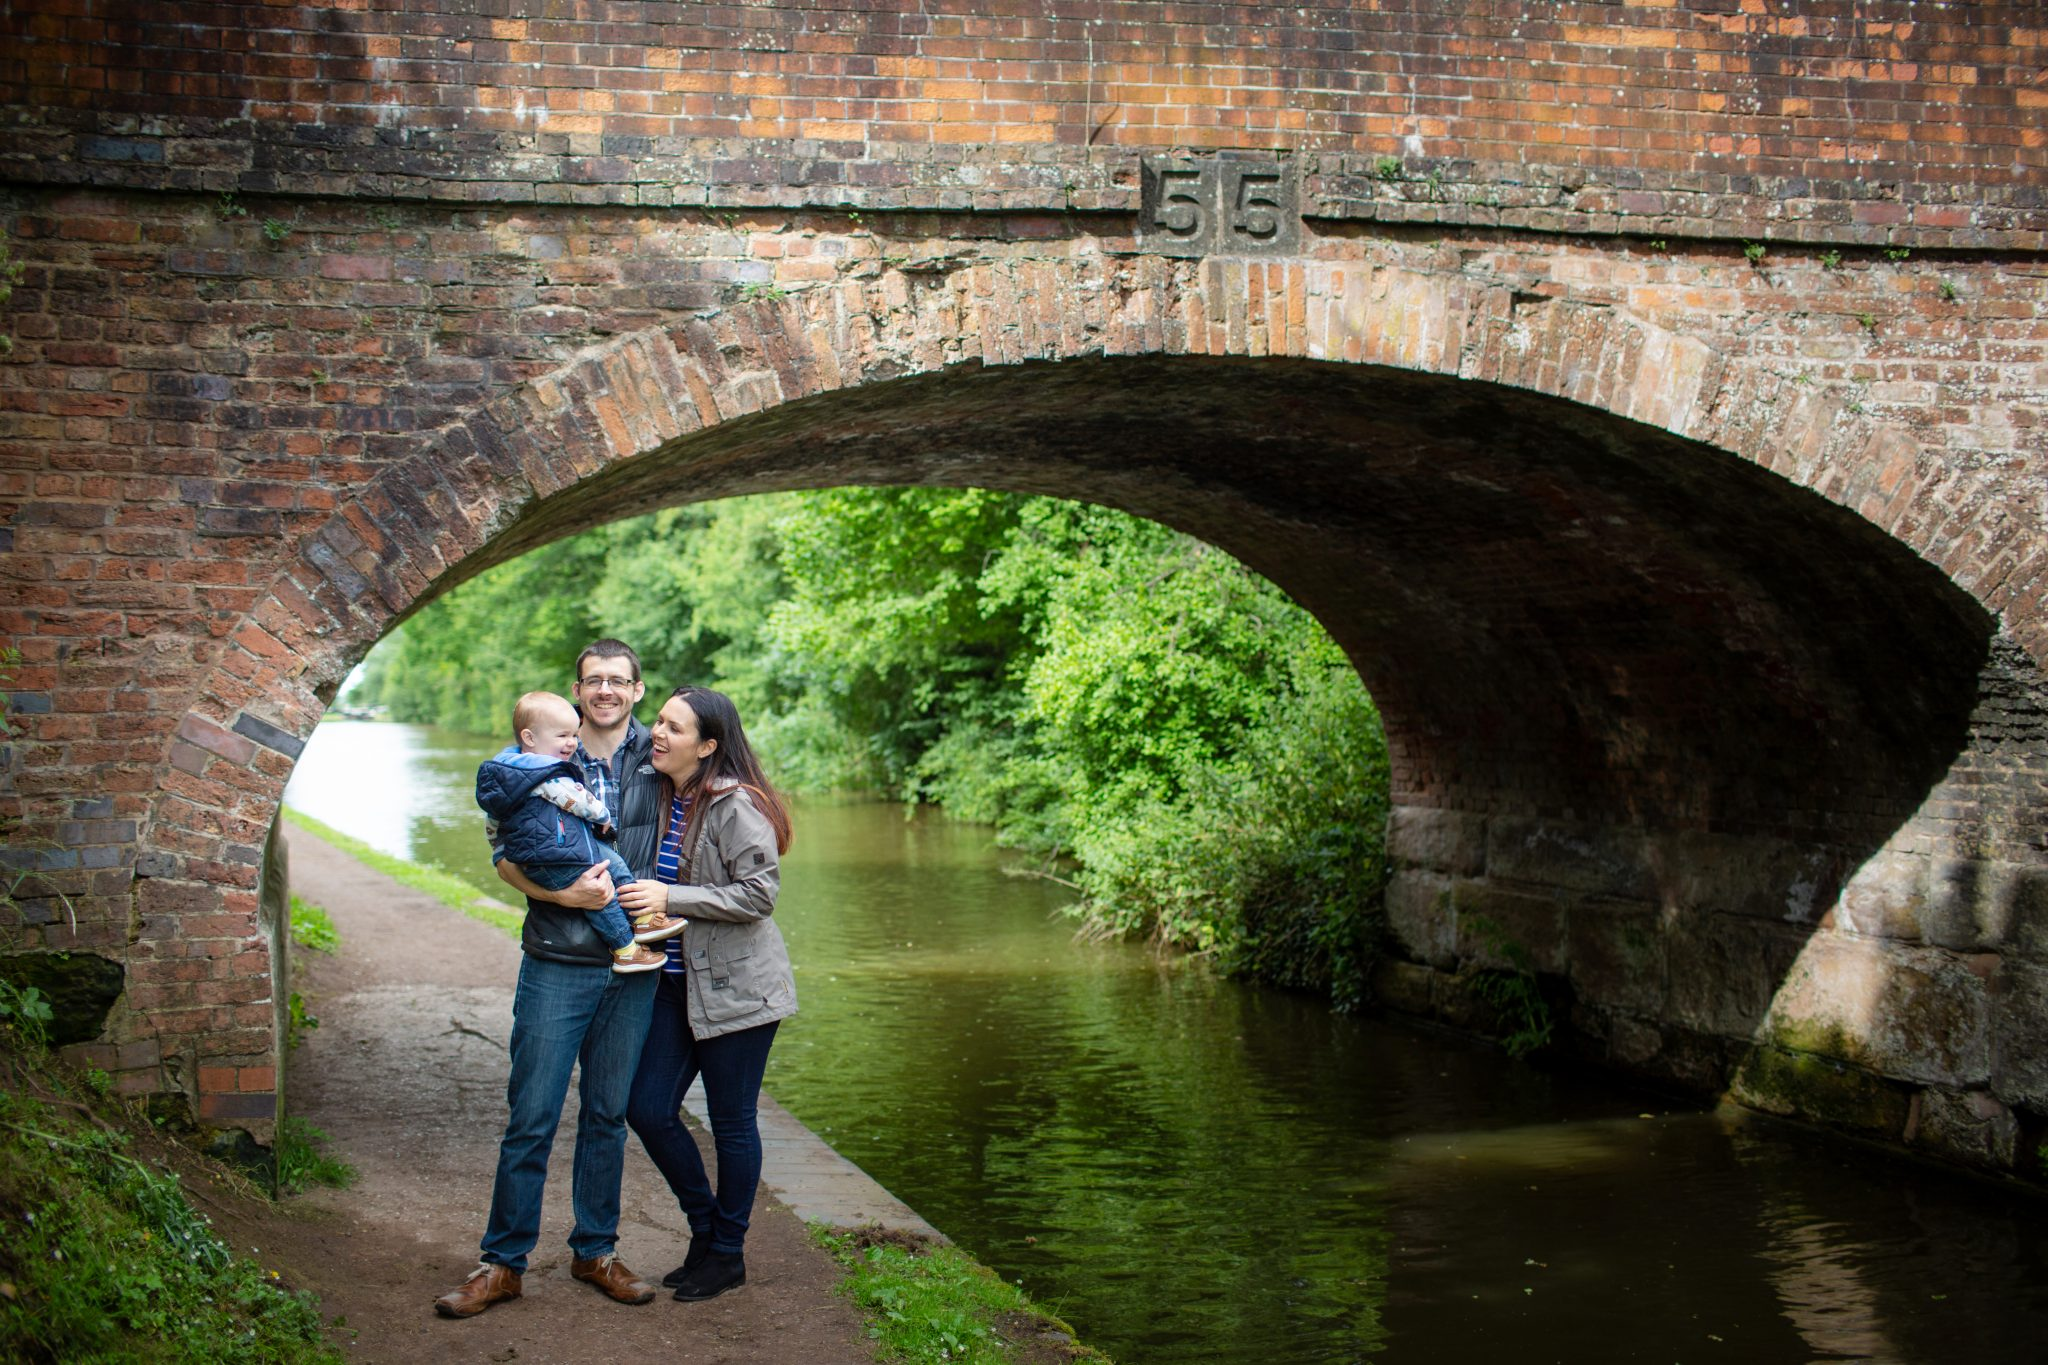 Family Portrait by the Canal.